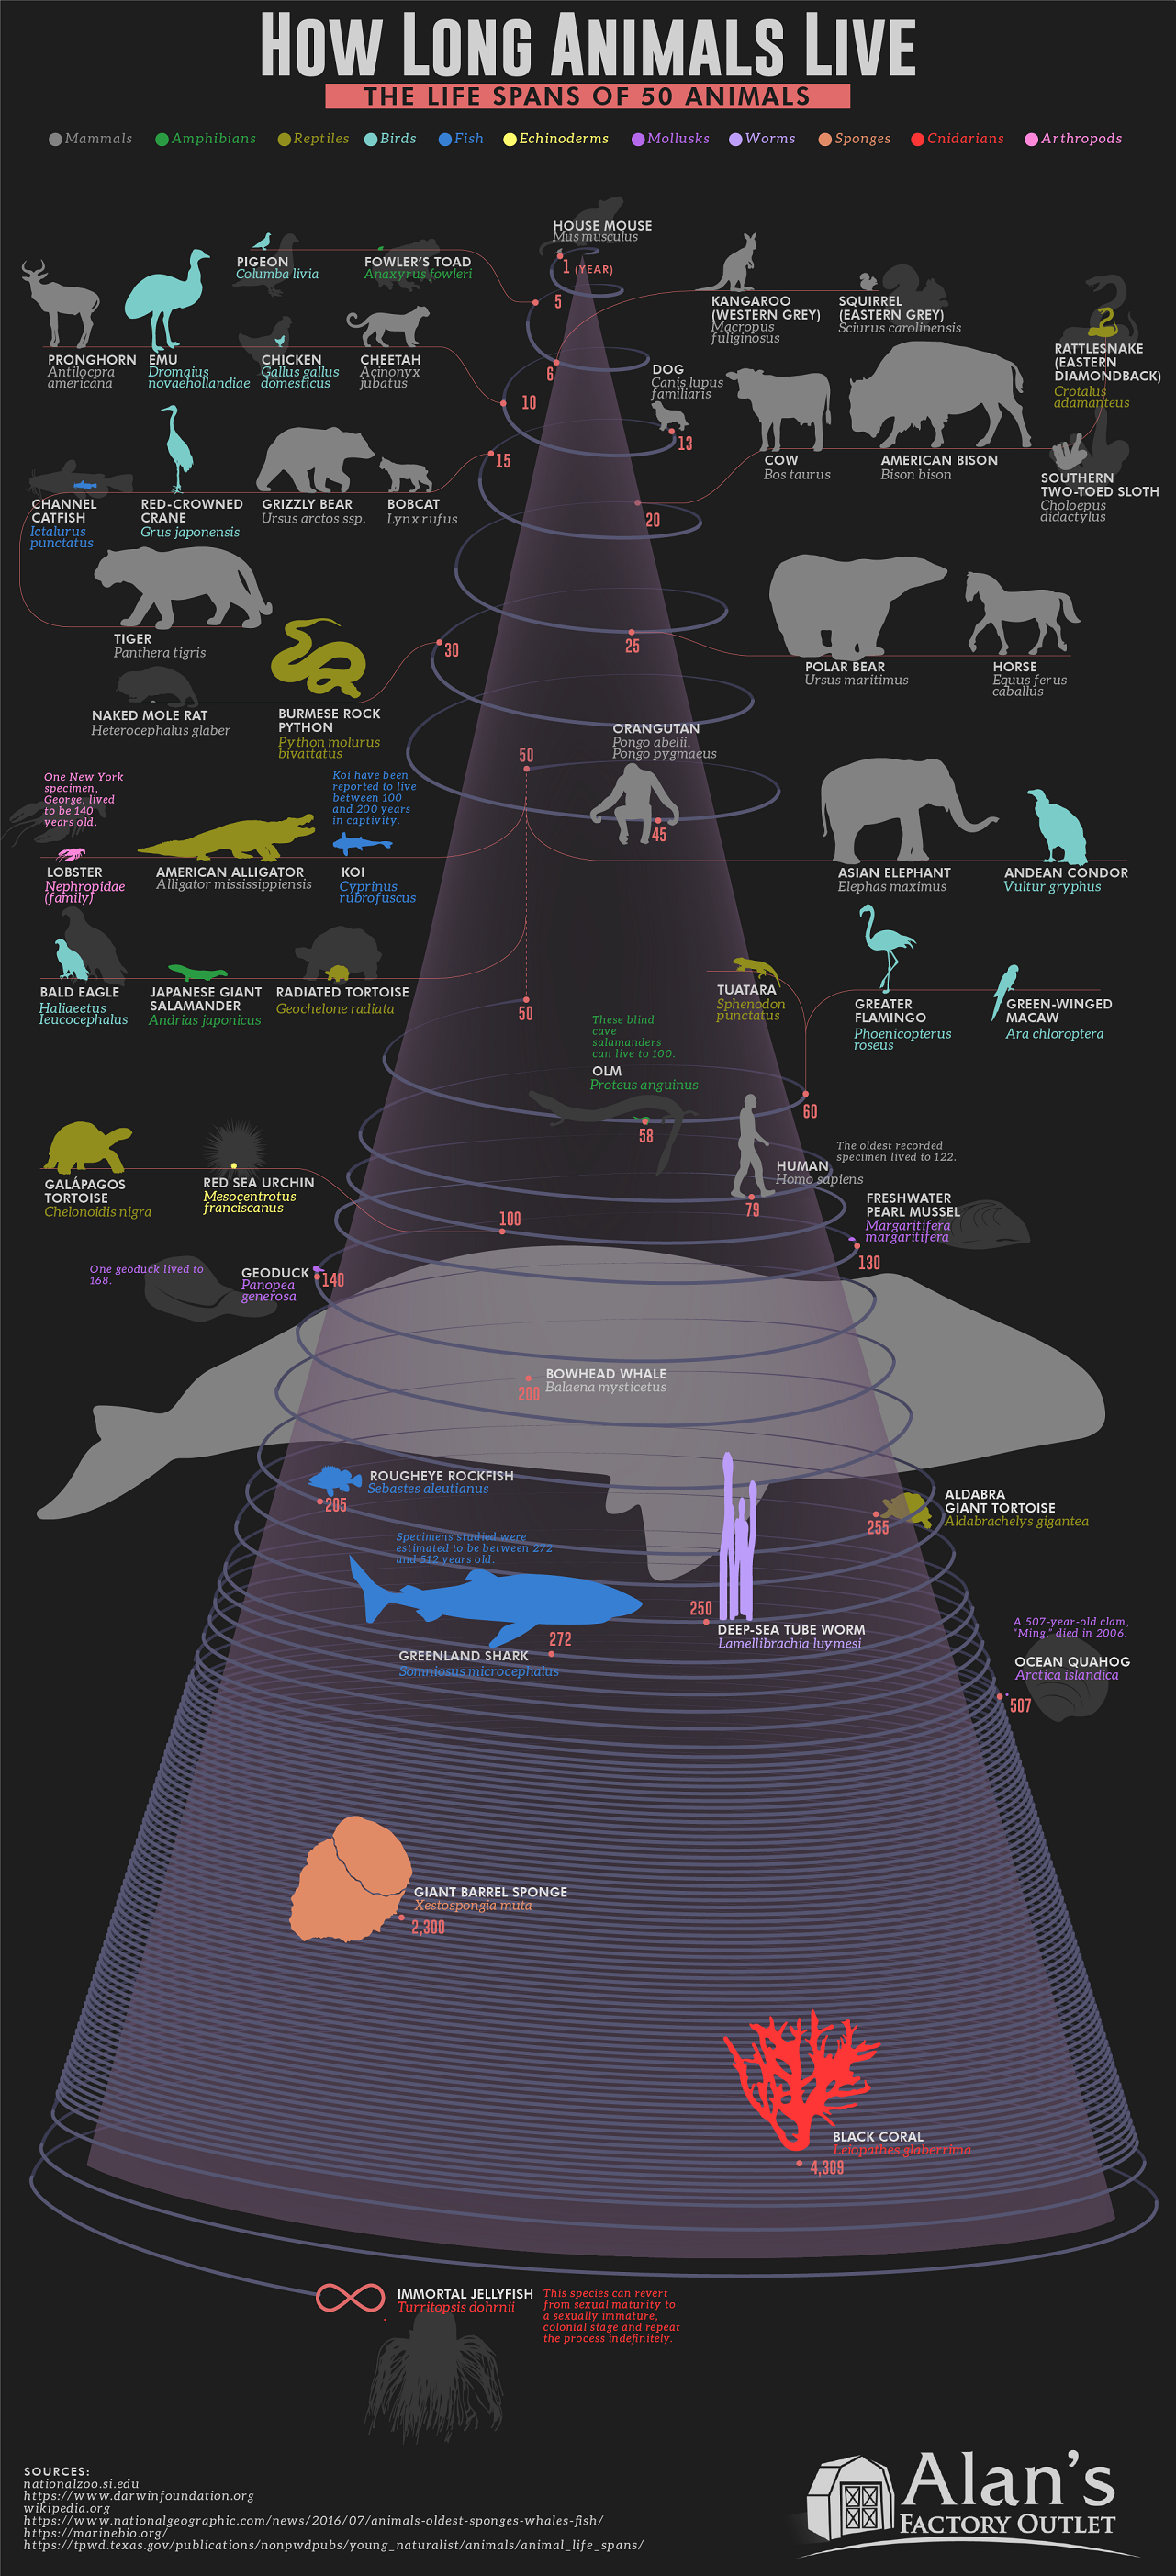 How Long Animals Live: The Life Spans of 50 Animals #infographic